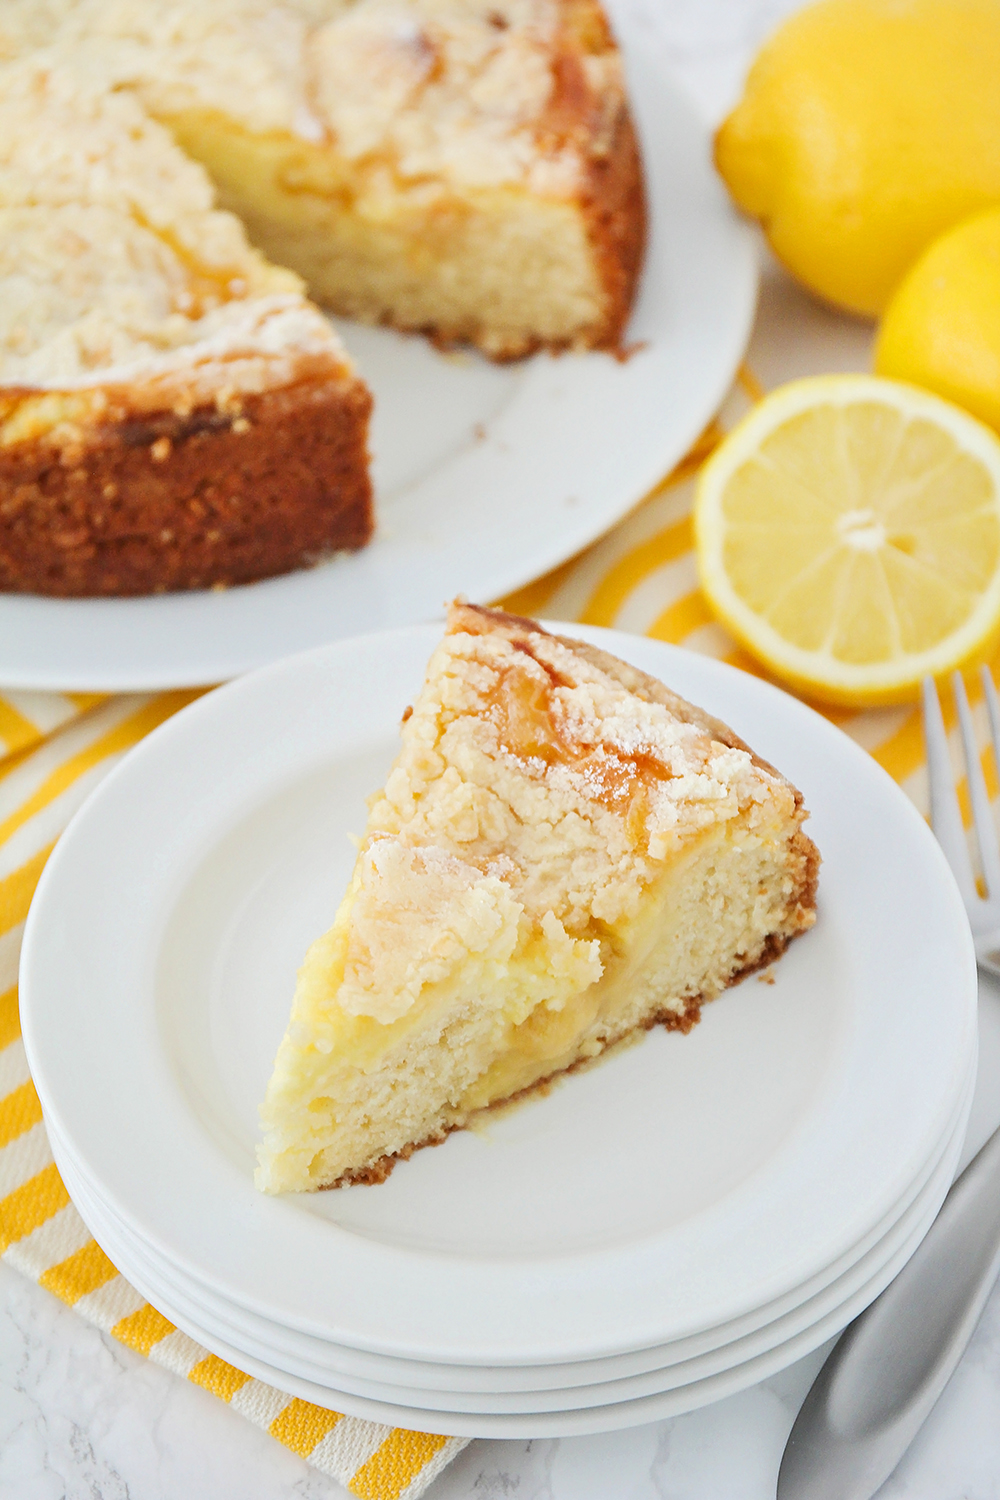 This lemon cream cheese coffee cake is so tender and flavorful, and perfect for breakfast, dessert, or entertaining!